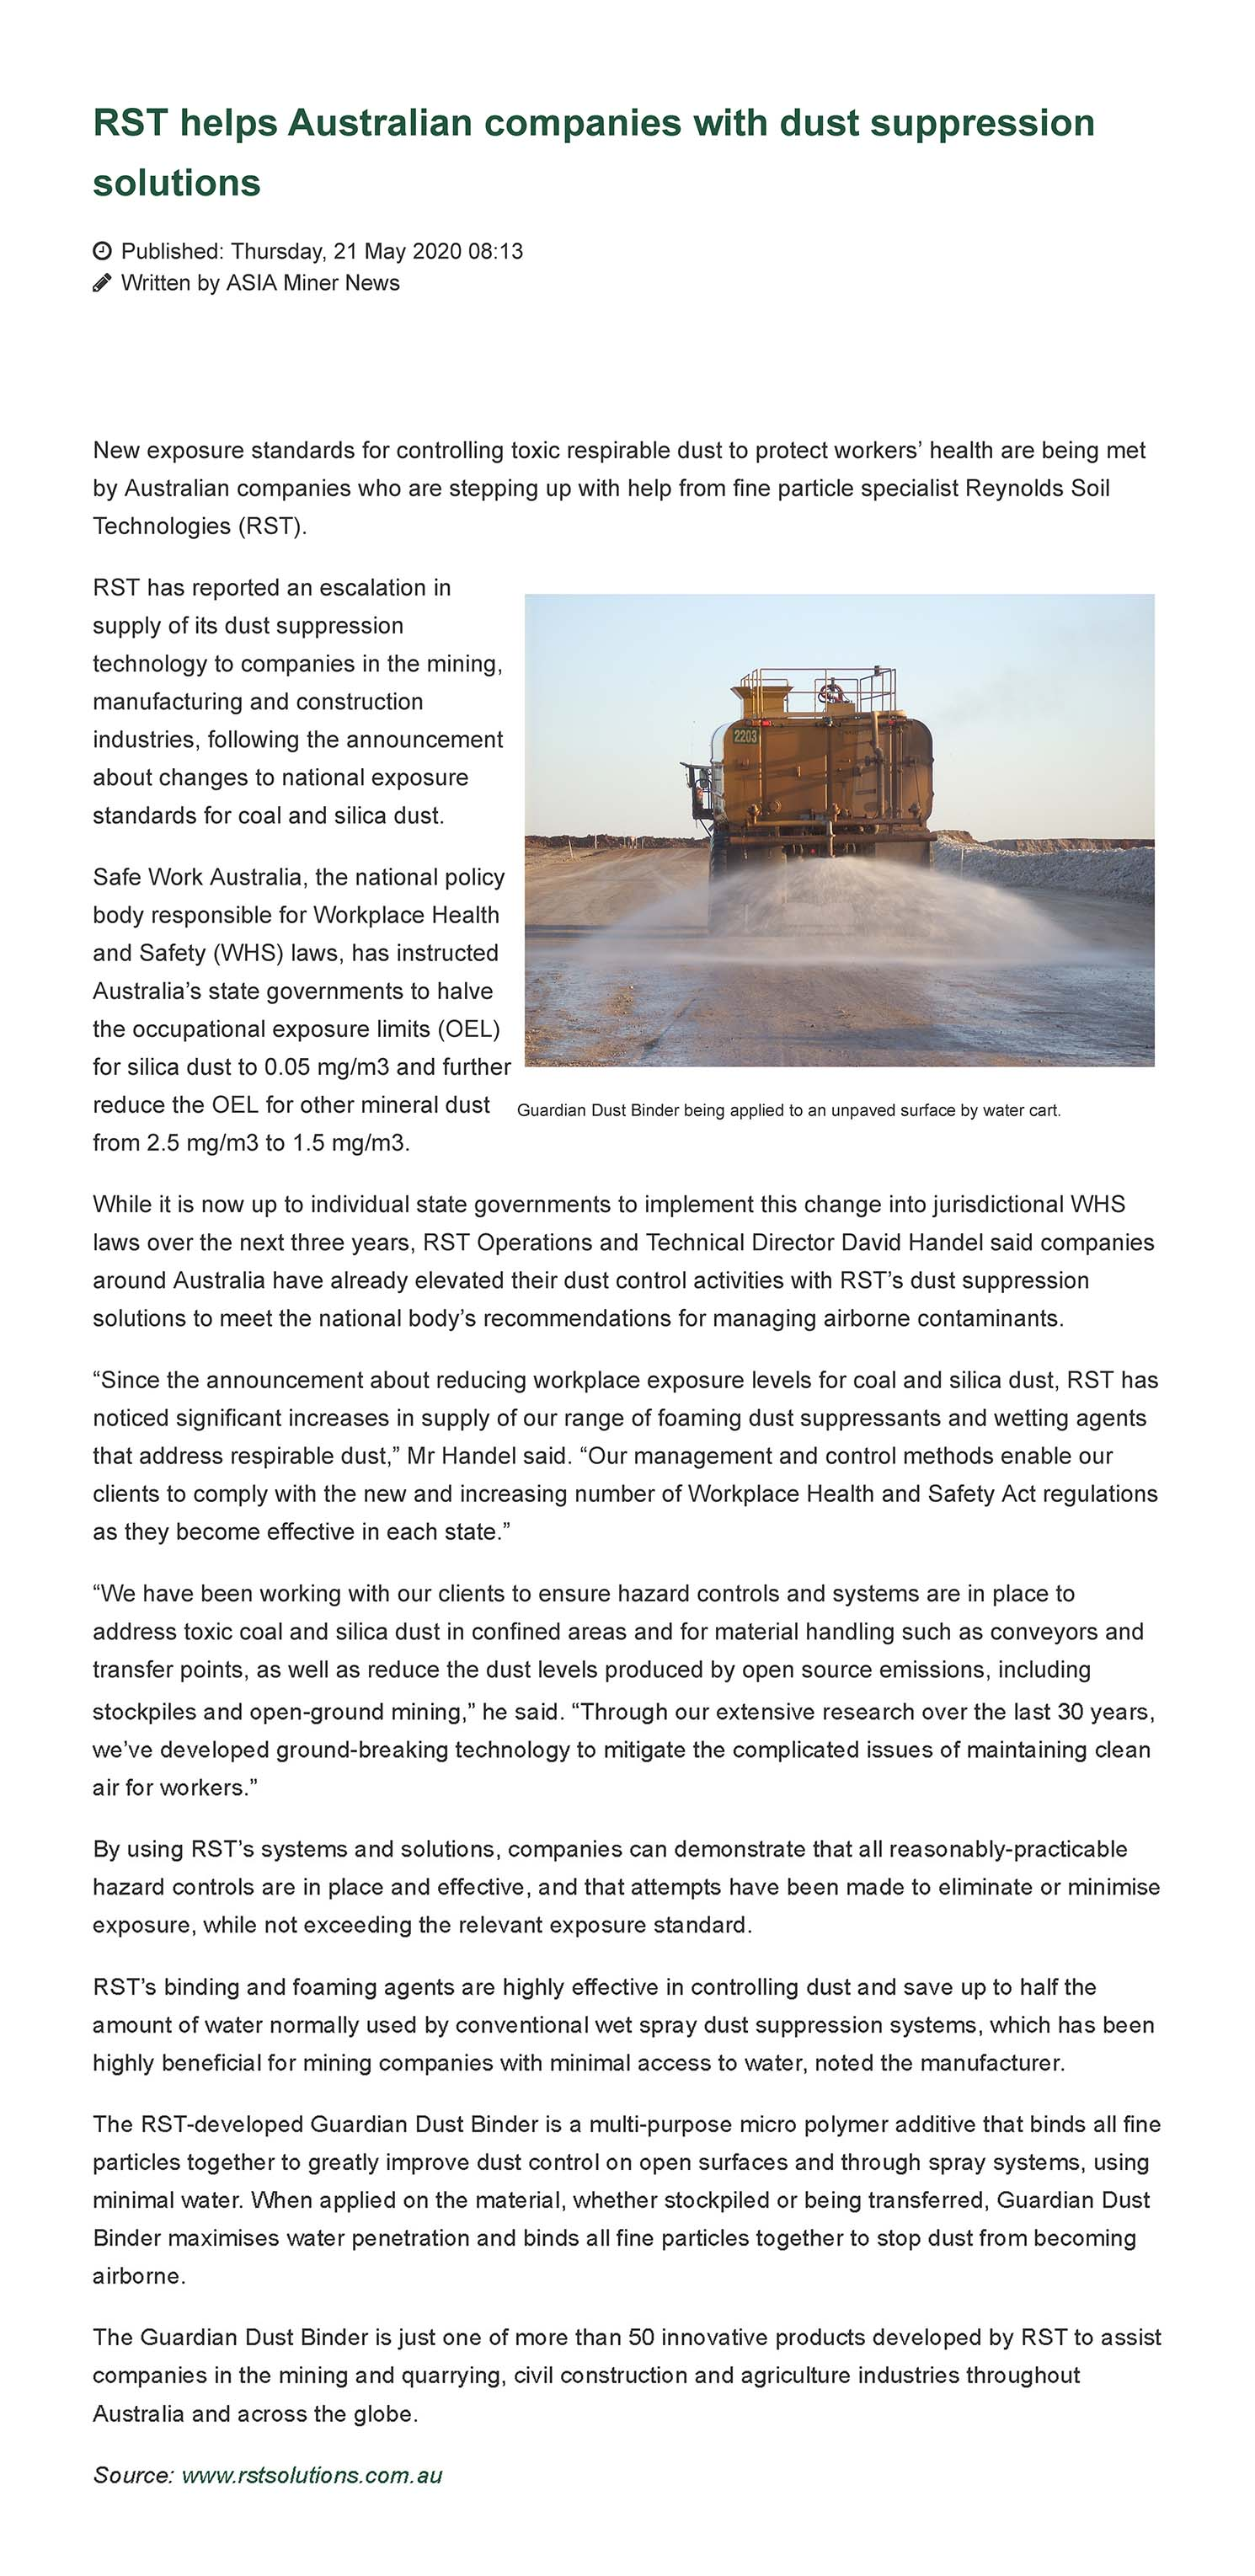 RST Helps Australian Companies with Dust Suppression Solutions